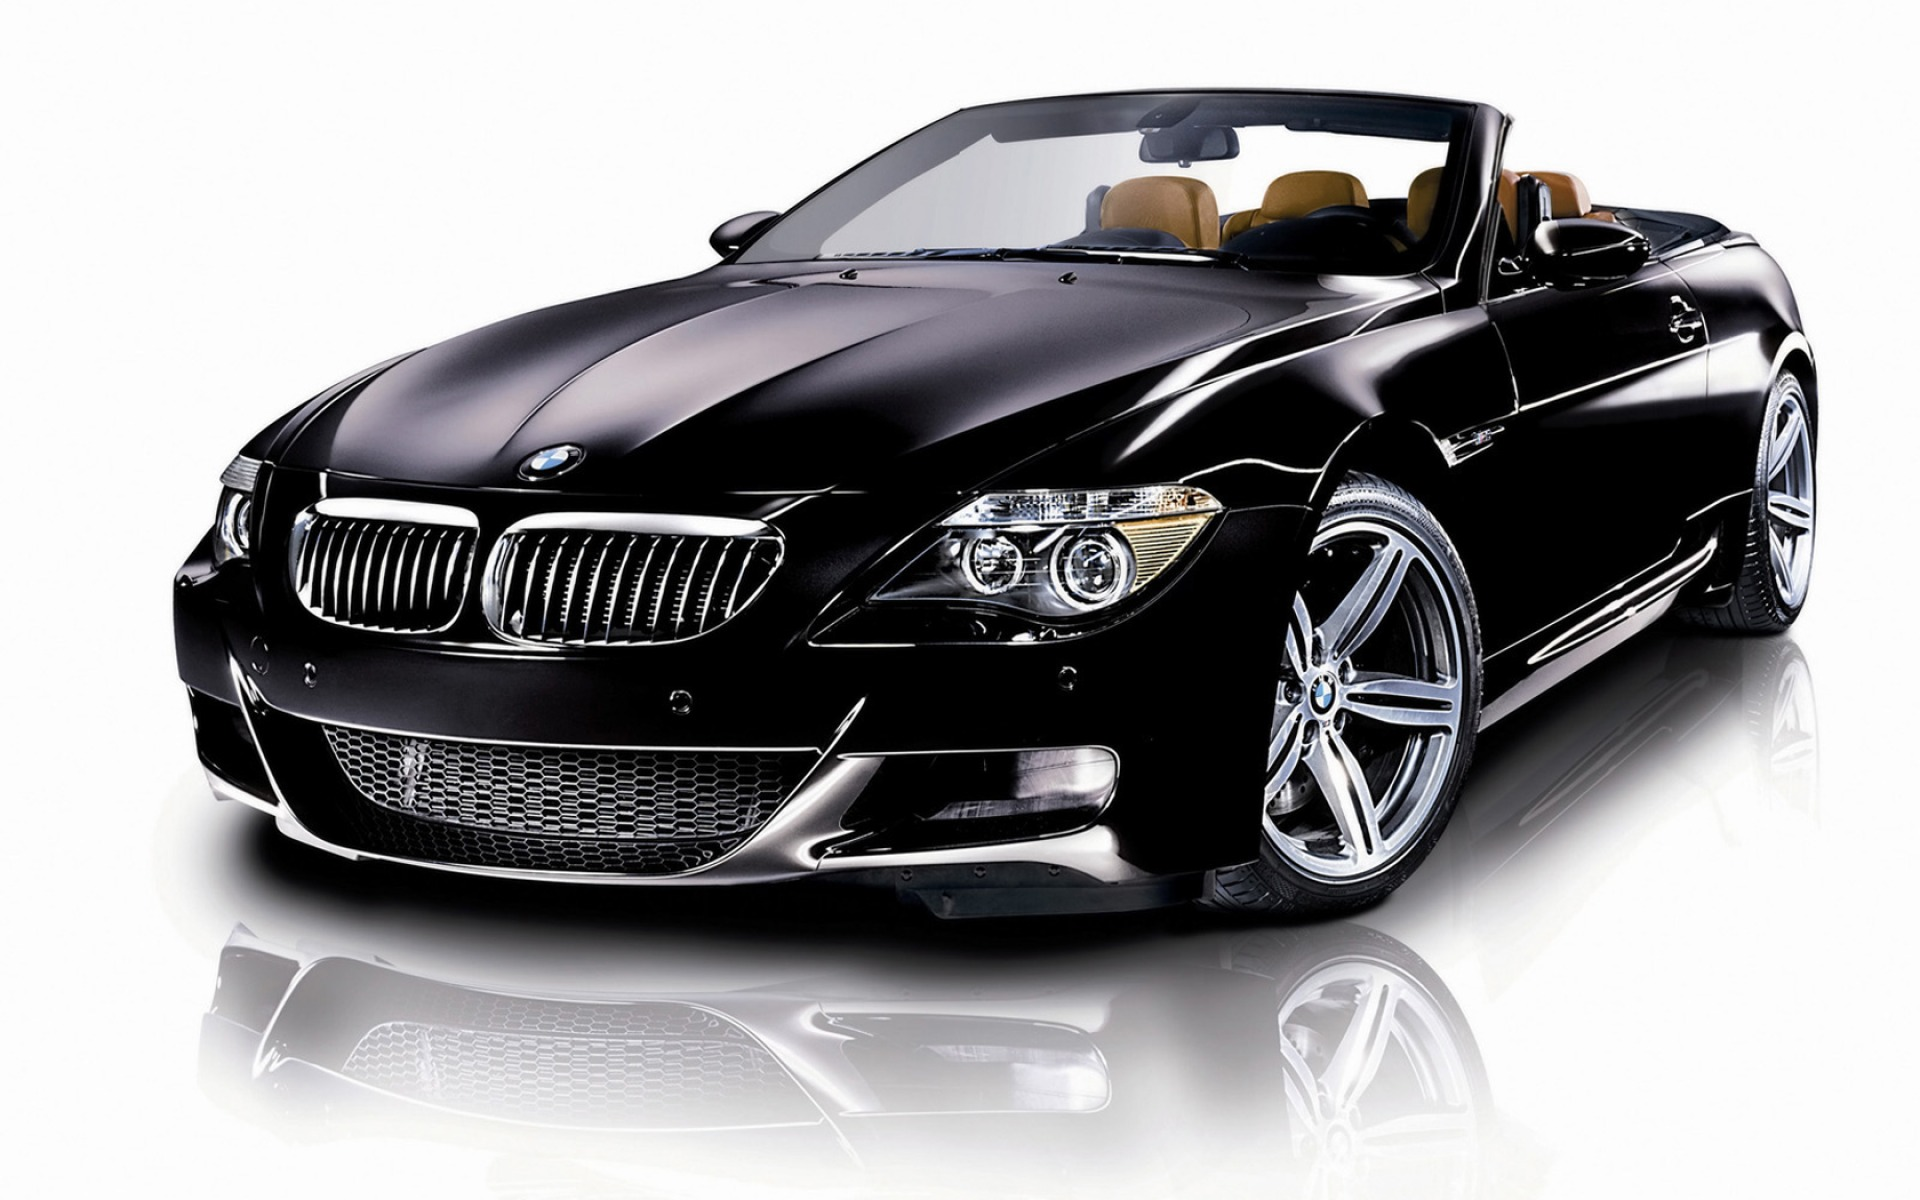 Ultrablogus  Sweet Bmw Car Wallpaper Wallpapers For Free Download About   With Lovable Bmw M Convertible Wallpaper Bmw Cars With Beauteous  Ford Mustang Interior Also  Bmw M Interior In Addition  Dodge Dart Interior And Cavalier Interior As Well As  Ford Interior Additionally  Impala Interior From Allfreedownloadcom With Ultrablogus  Lovable Bmw Car Wallpaper Wallpapers For Free Download About   With Beauteous Bmw M Convertible Wallpaper Bmw Cars And Sweet  Ford Mustang Interior Also  Bmw M Interior In Addition  Dodge Dart Interior From Allfreedownloadcom